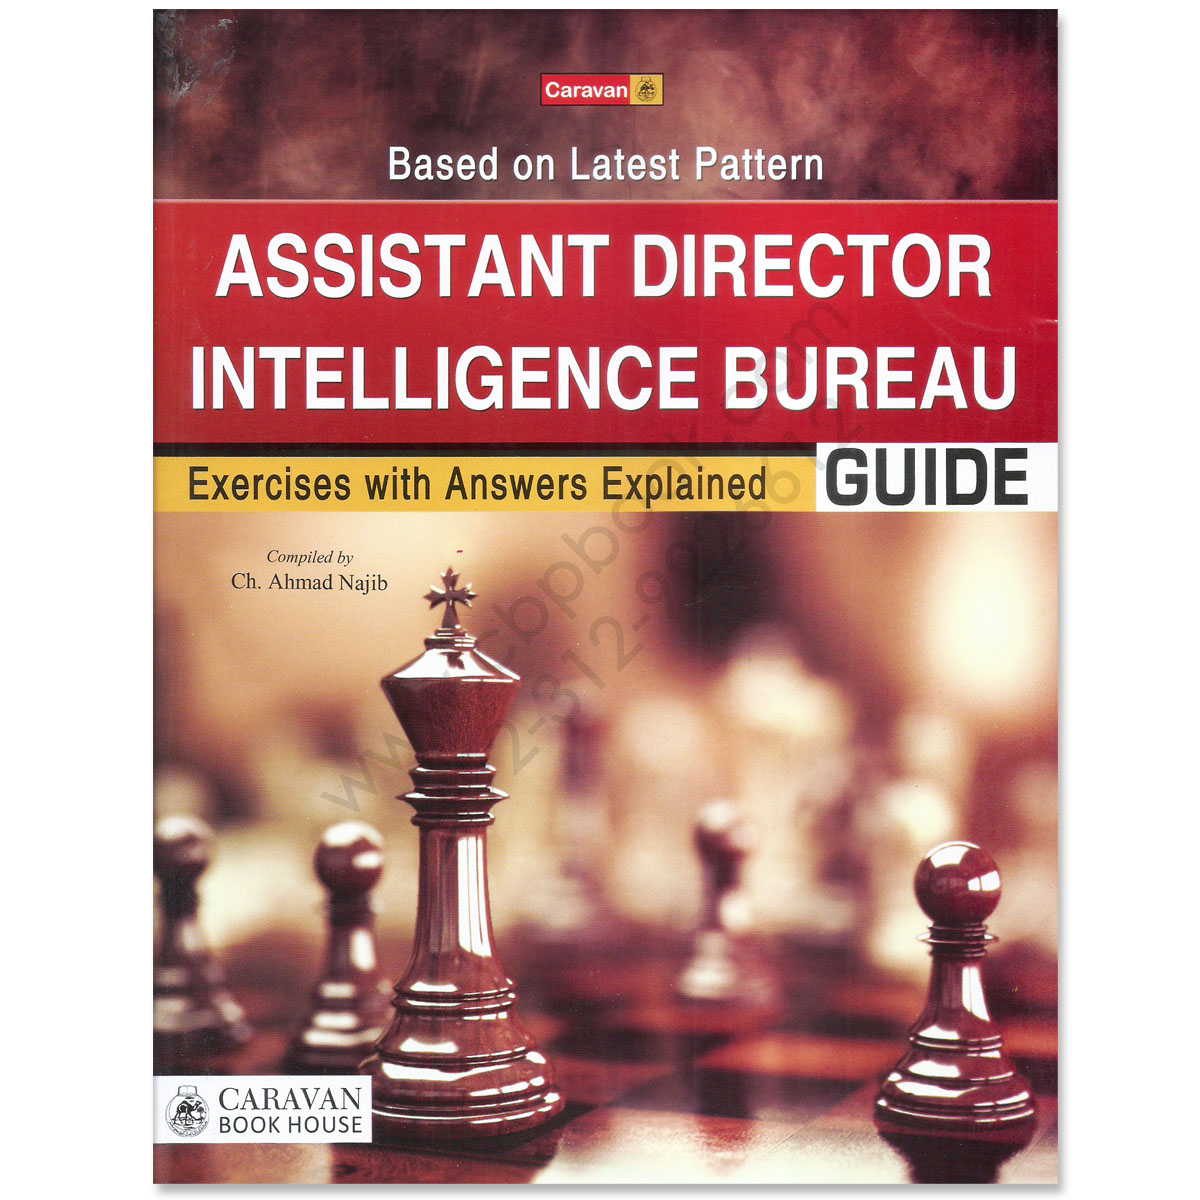 caravan assistant director intelligence bureau guide by ch ahmad najib